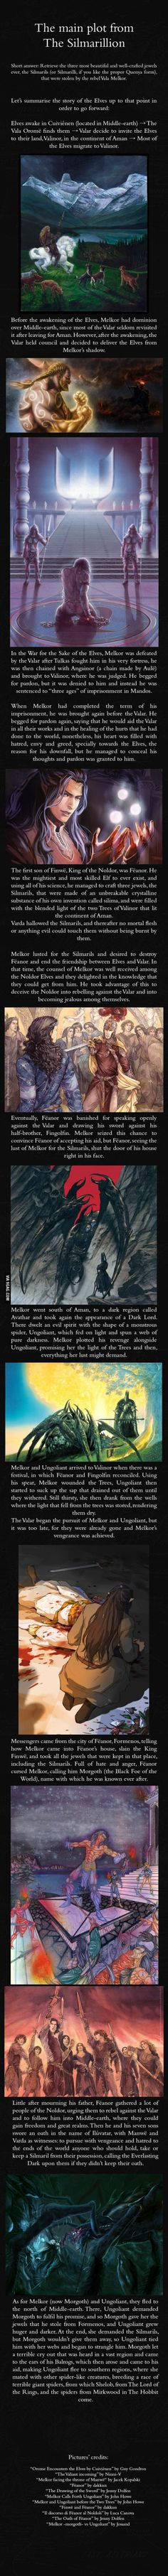 The Silmarillion main plot - J.R.R. Tolkien's Mythology